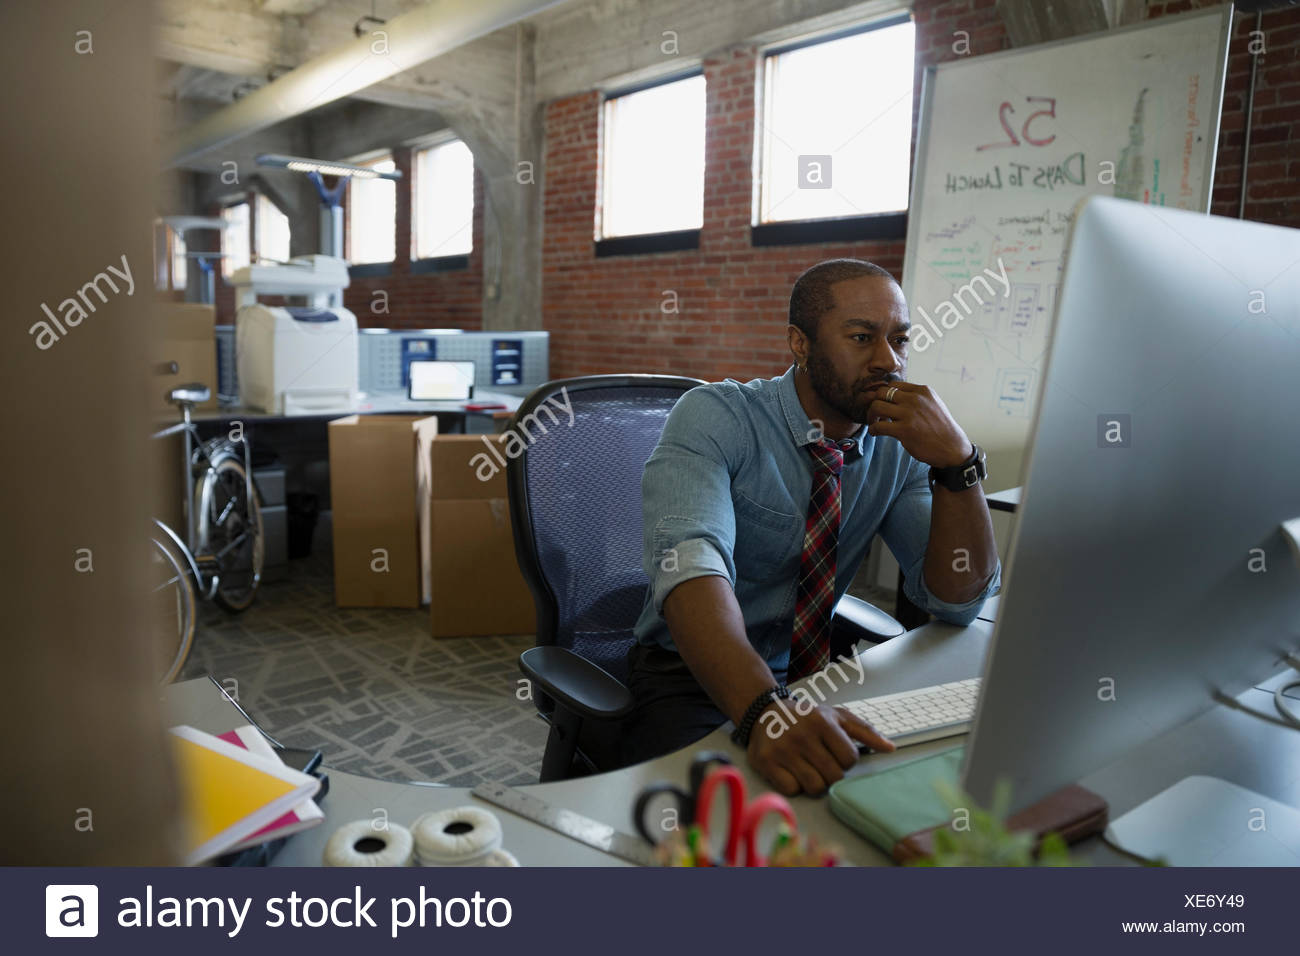 Entrepreneur using computer in new office - Stock Image